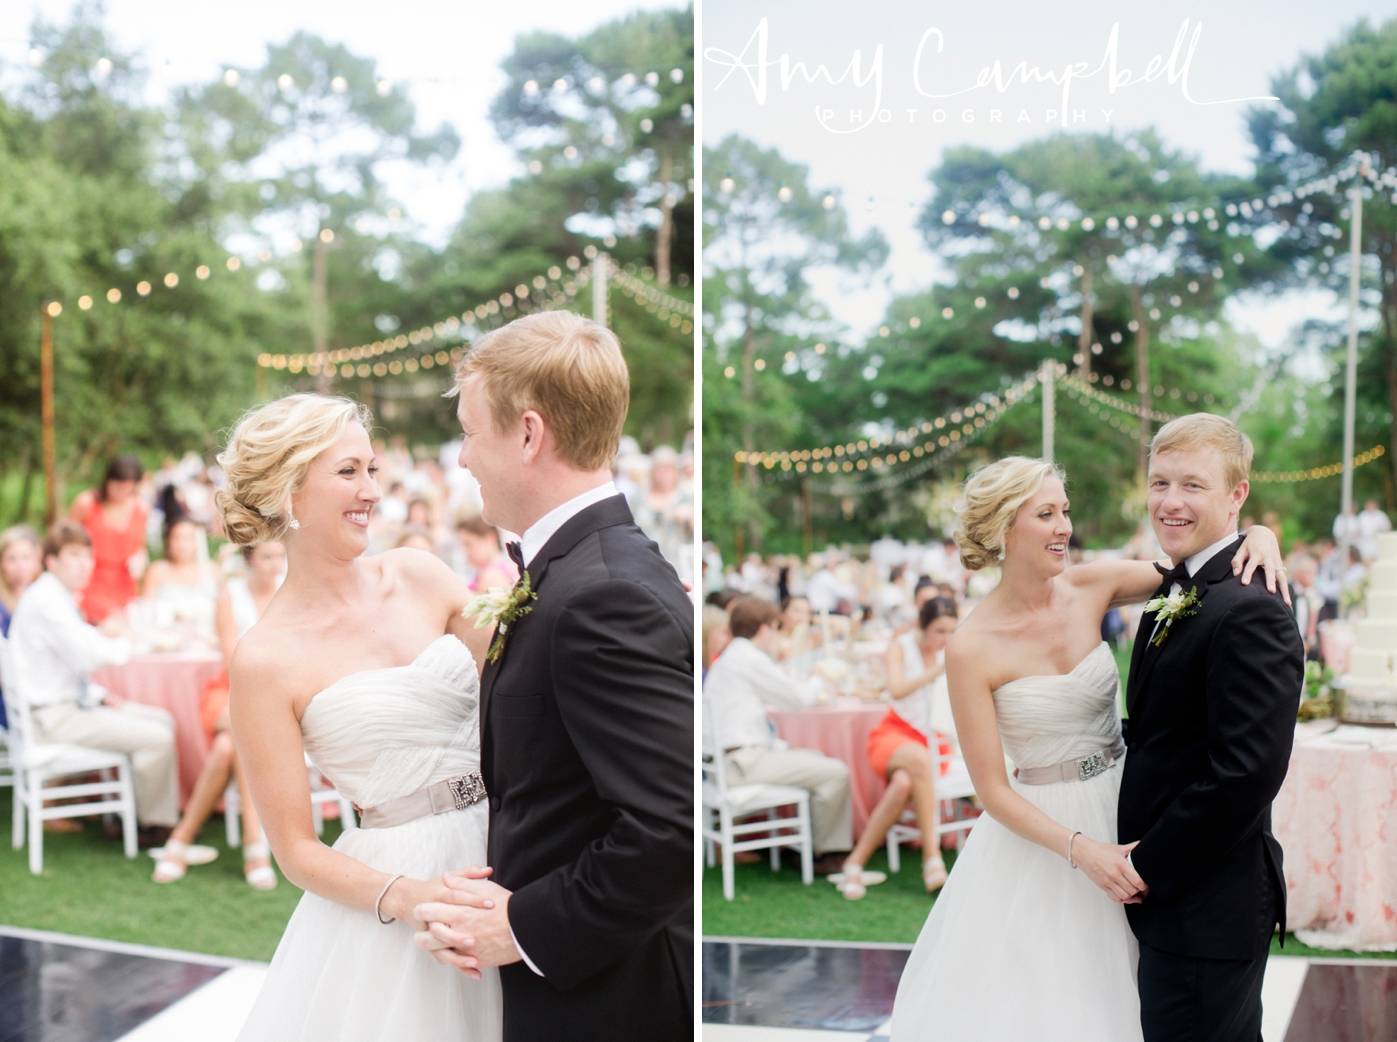 emilyreed_wed_blog_amycampbellphotography_0083.jpg